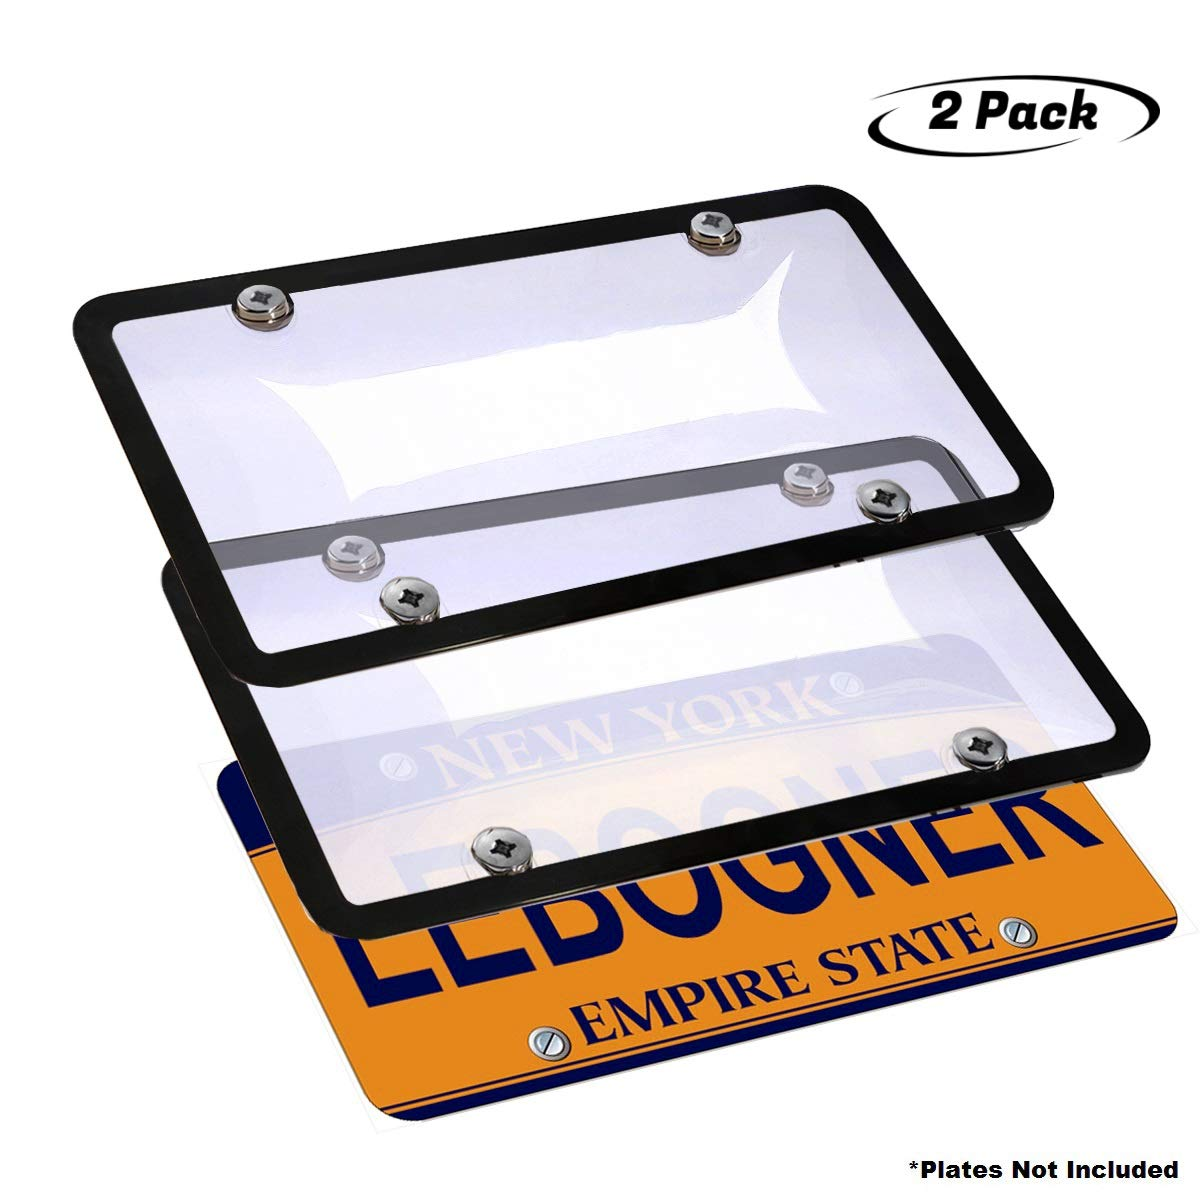 lebogner Car License Plate Frames Will Fit Standard US Plates 2 Hole Chrome Finish Unbreakable Frames to Protect Plates Mounting Hardware Included 2 Pack Stainless Steel Polish Auto Plate Frames